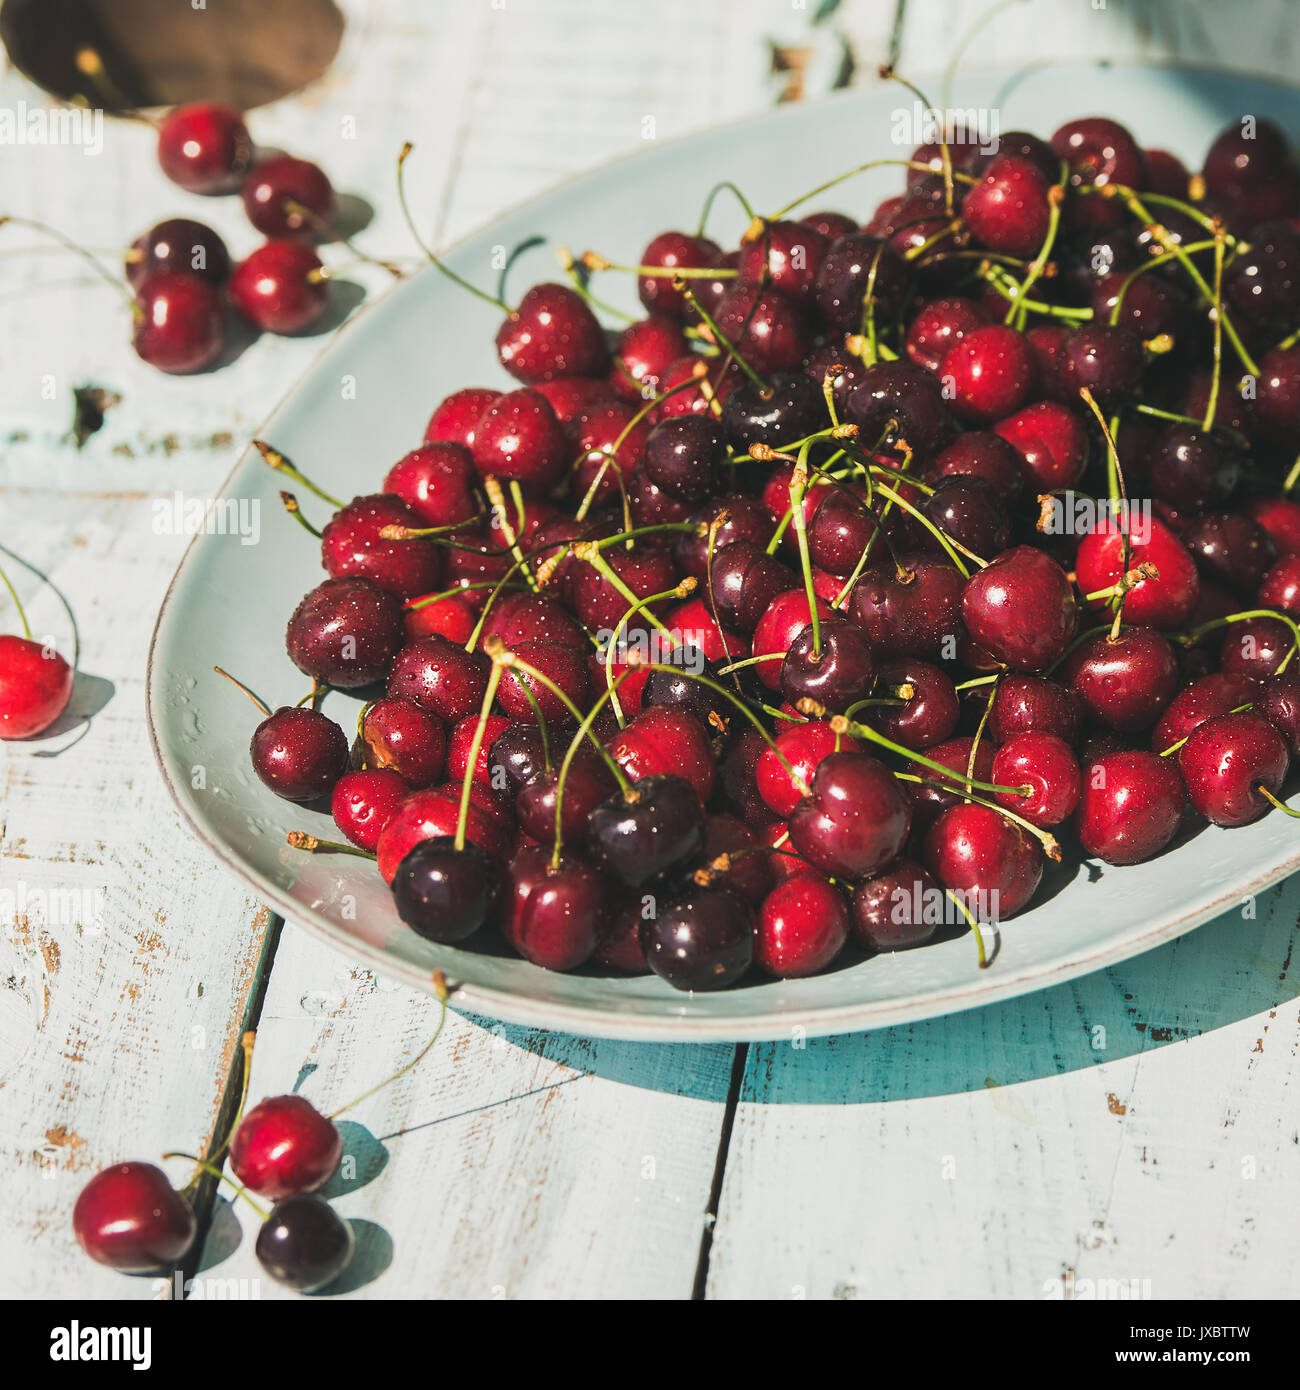 Fresh ripe sweet cherries in plate on rustic light blue wooden garden table, selective focus, square crop. Summer food concept - Stock Image